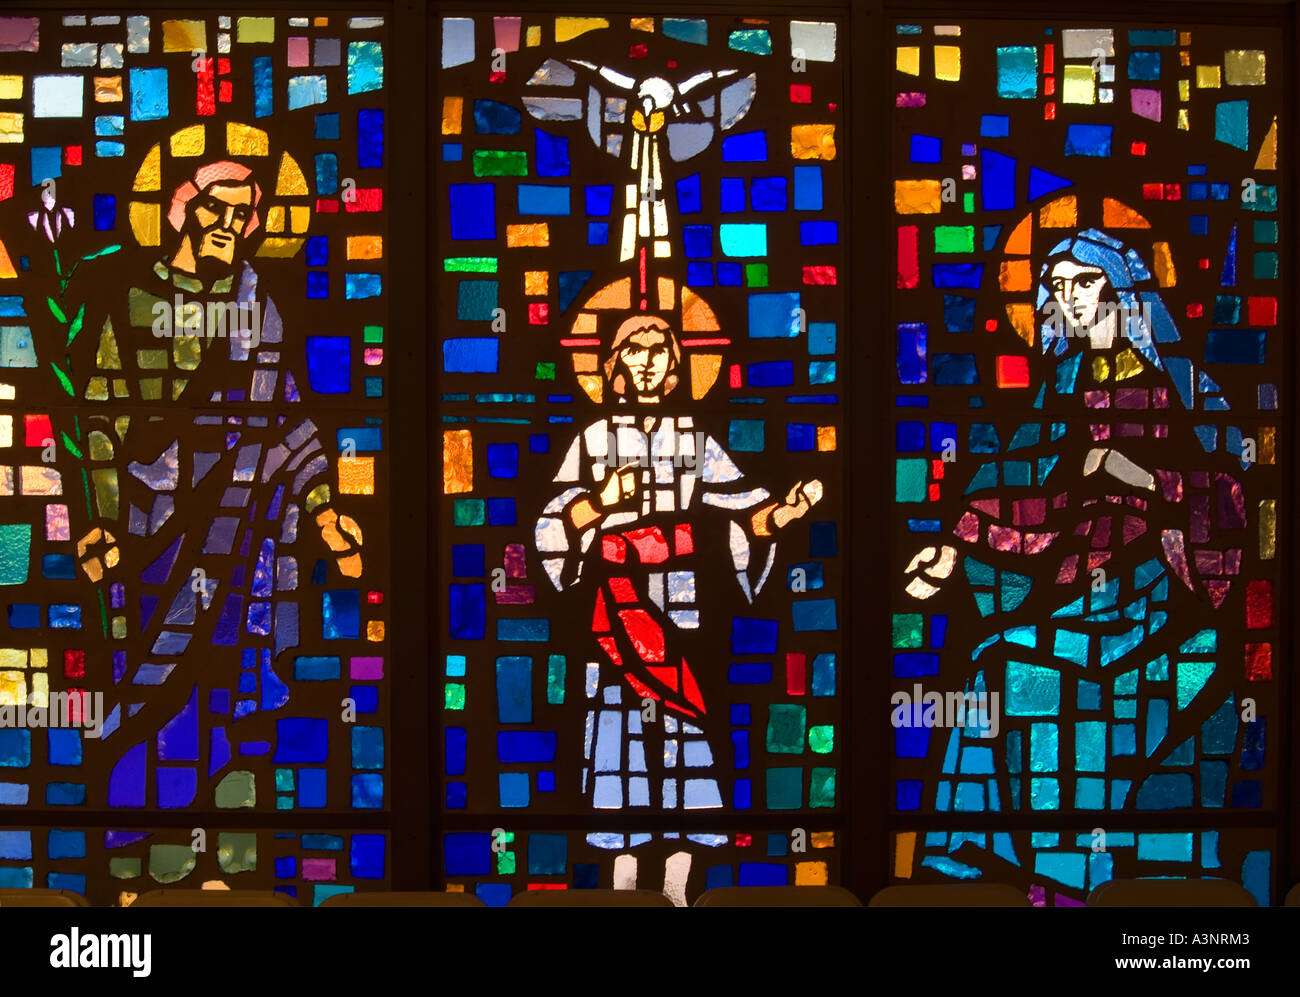 Roman Catholic Church Stained Glass Window Depicting Jesus Christ And The Holy Family Mary Joseph